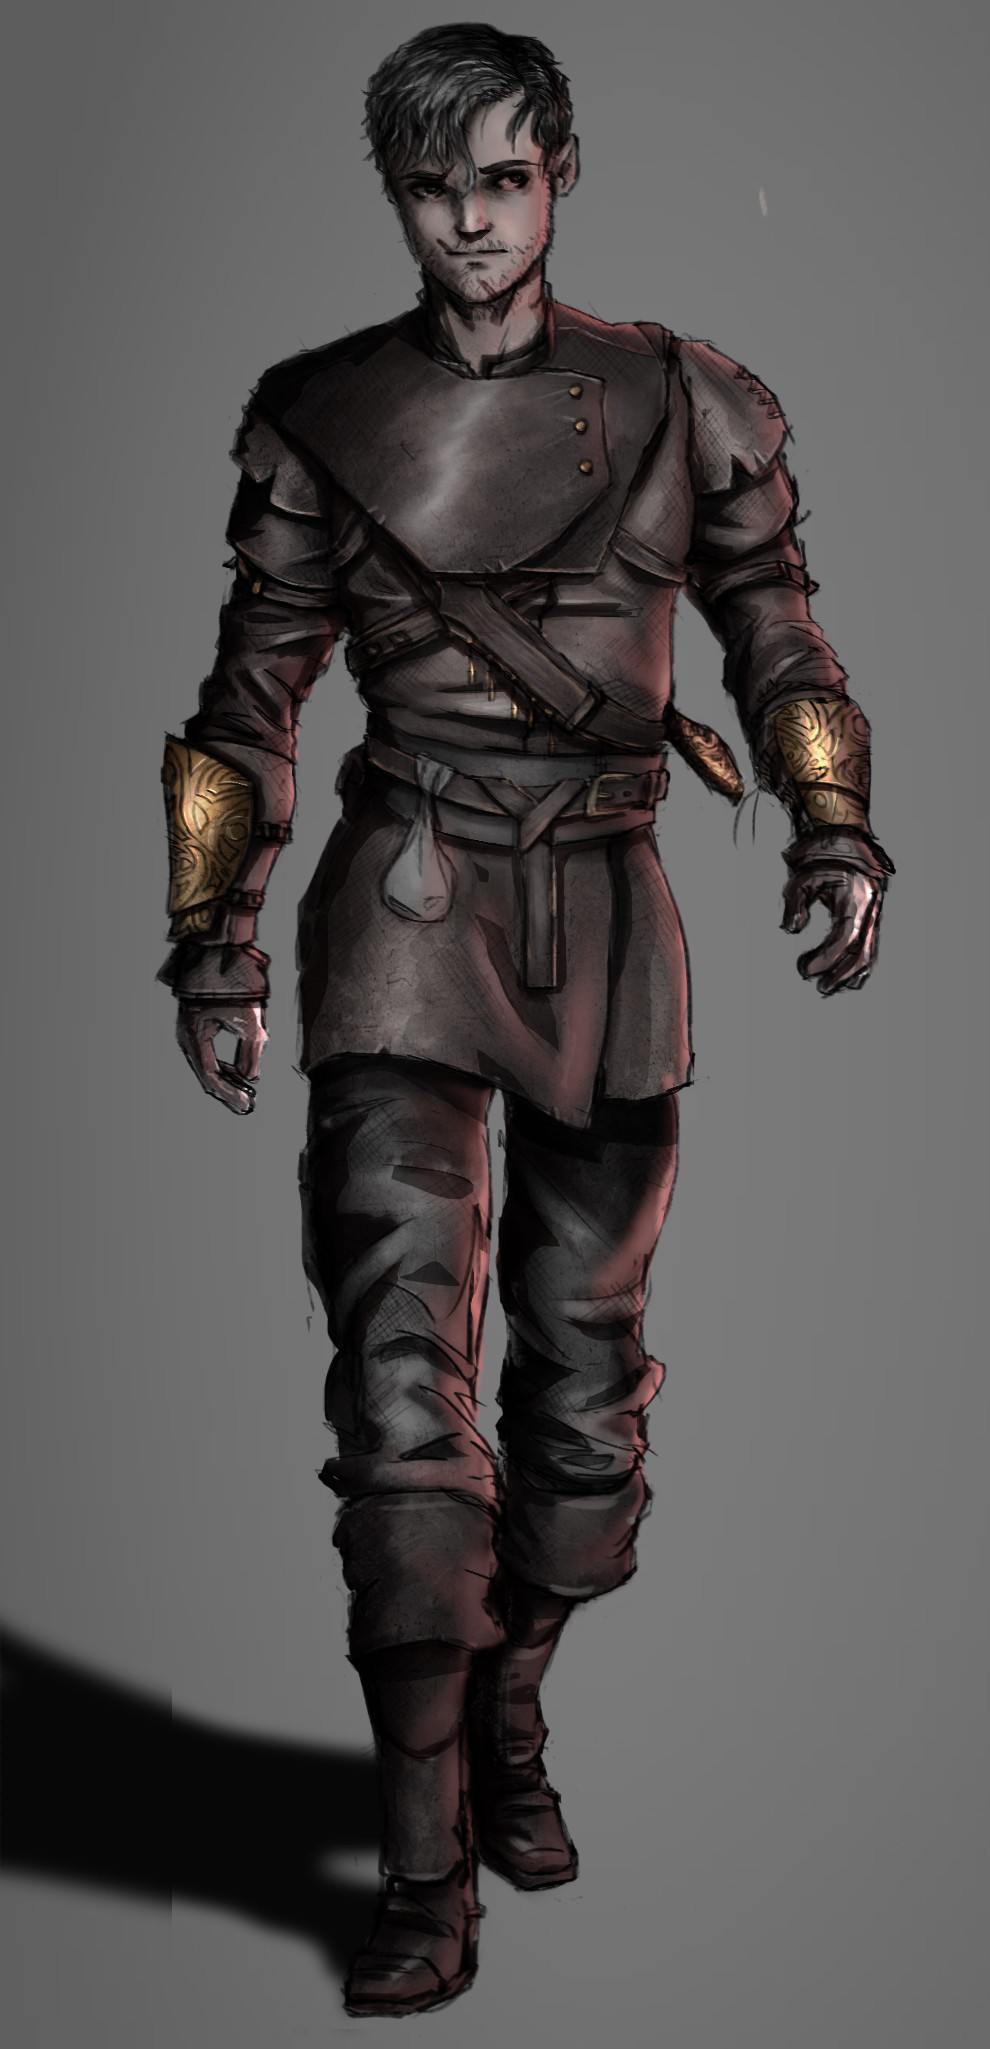 Kurtis knight concept art kutersingle